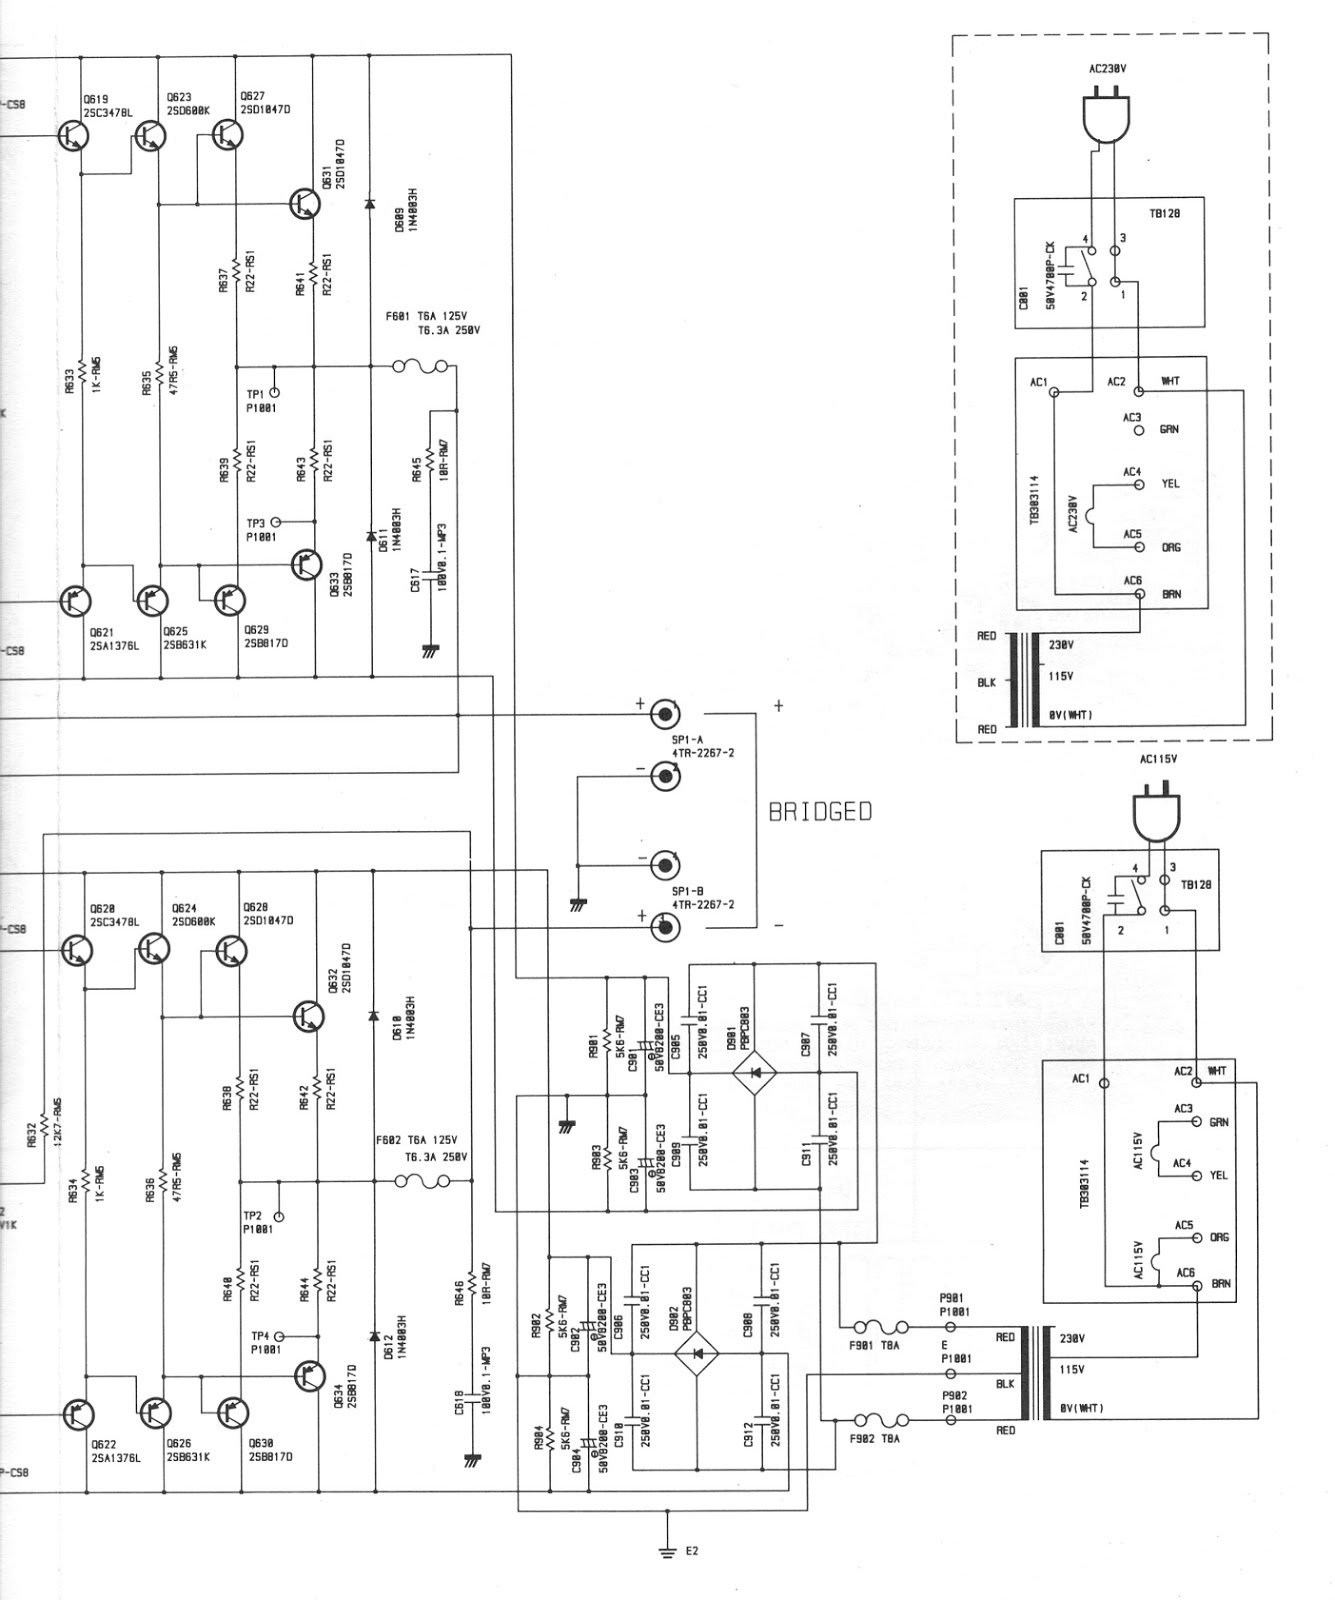 lg led tv schematic diagram wiring diagram database LG TV Troubleshooting rotel rb 970bx stereo power lifier schematic diagram bias lcd tv circuit diagram lg led tv schematic diagram